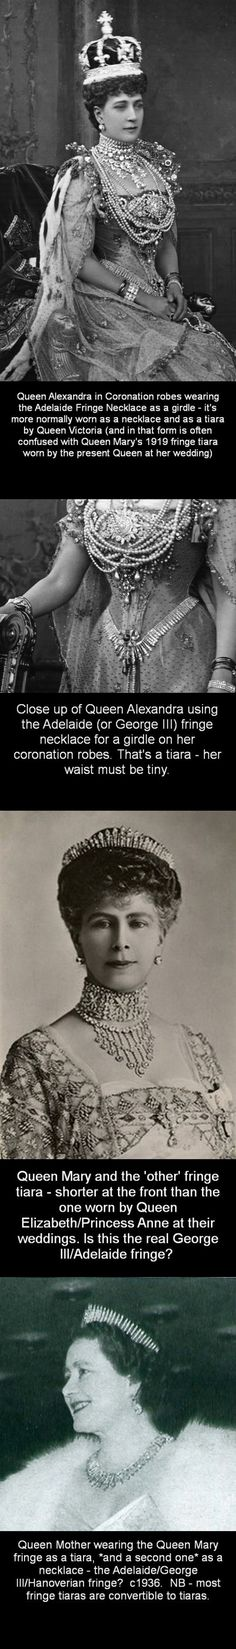 That last comment should read that most fringe tiaras are convertible to *necklaces*.  Also according to the Royal Collections Trust website (part of the Royal Household) this tiara worn here by Mary is indeed the Queen Adelaide tiara.